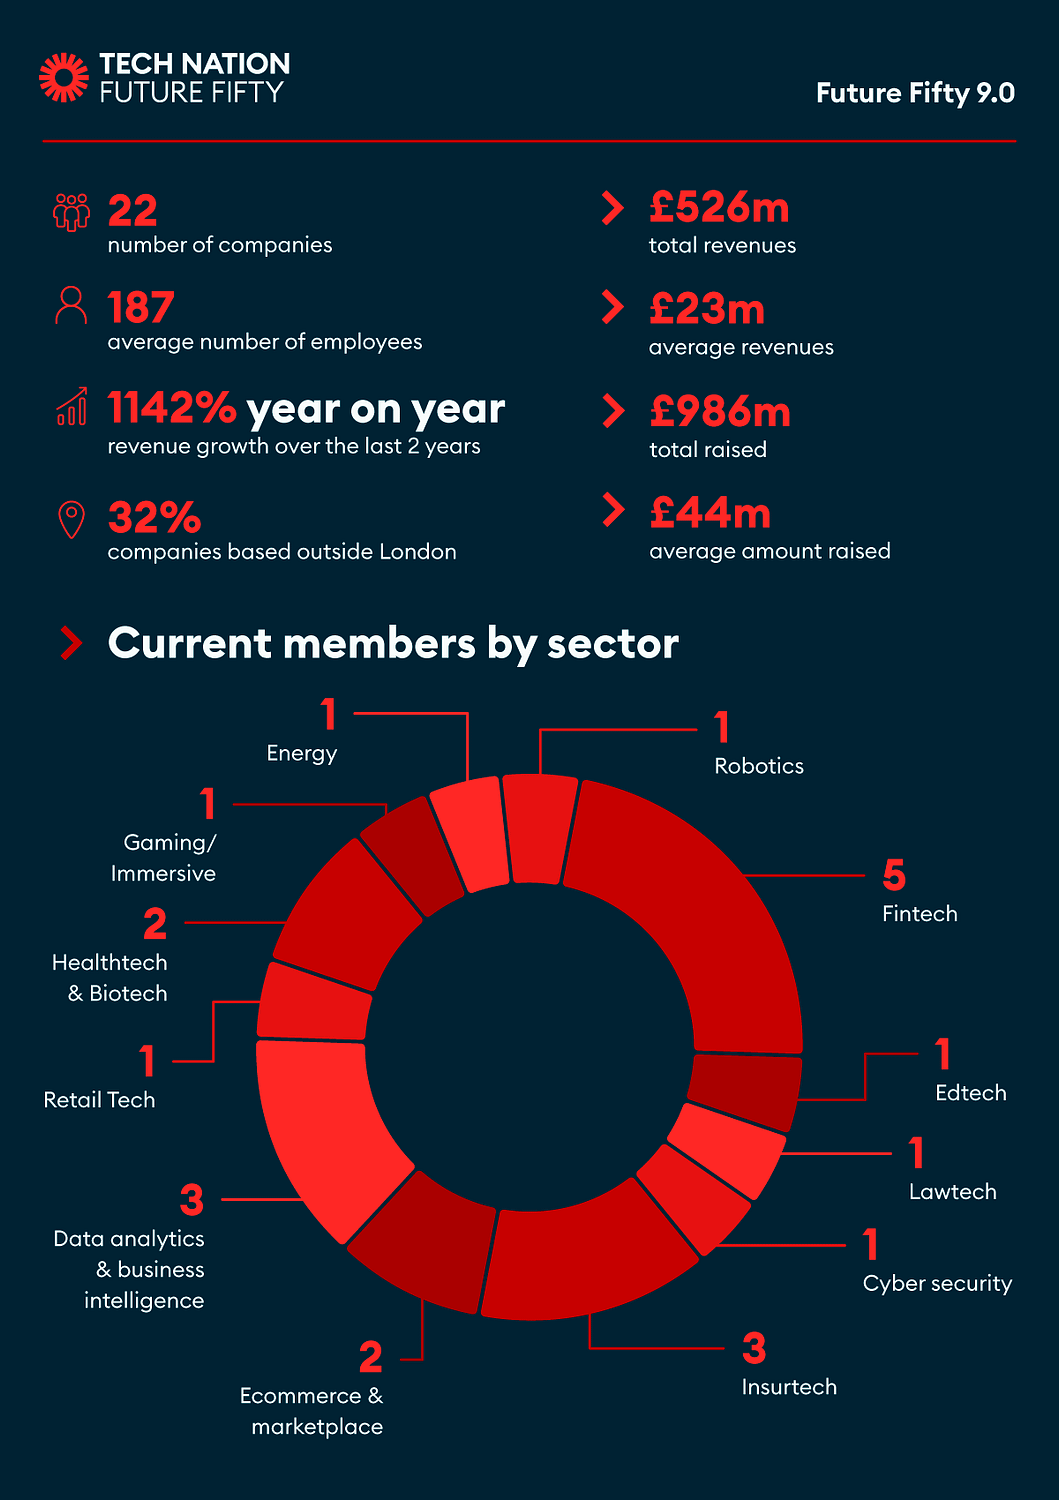 The facts and figures behind the Future Fifty 9.0 cohort